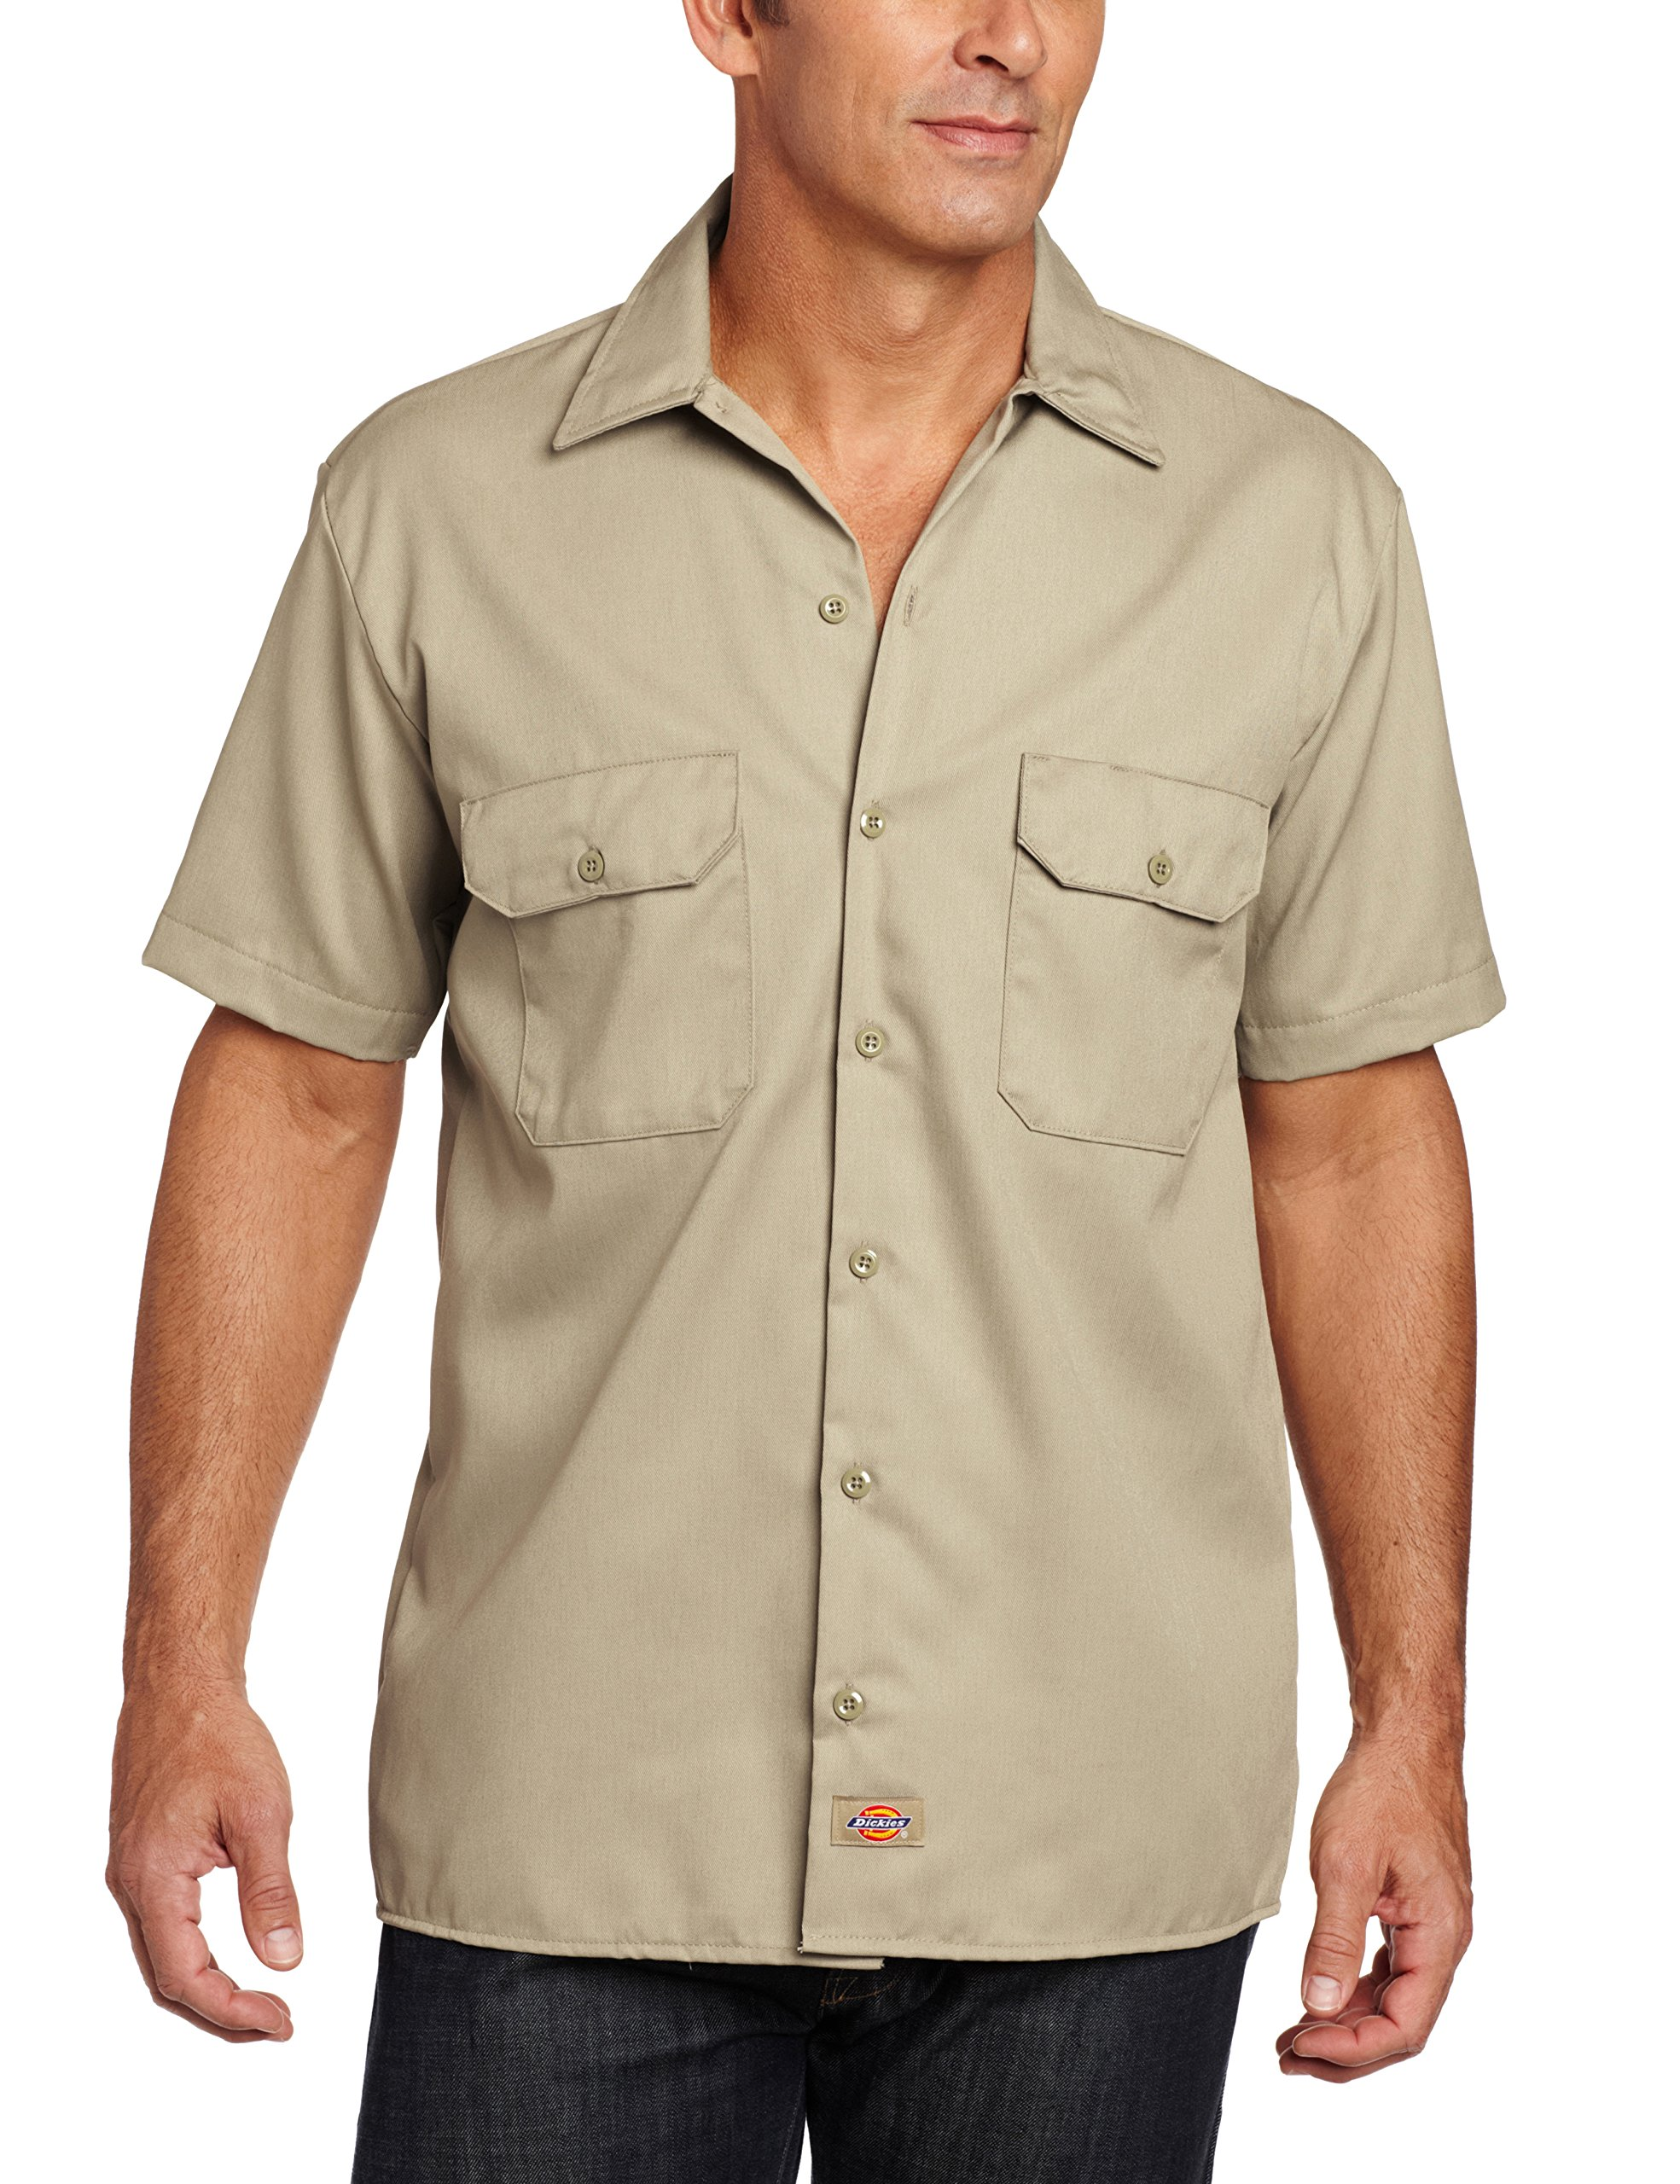 Dickies Men's Short Sleeve Workshirt in Khaki - XXX-Large by Dickies